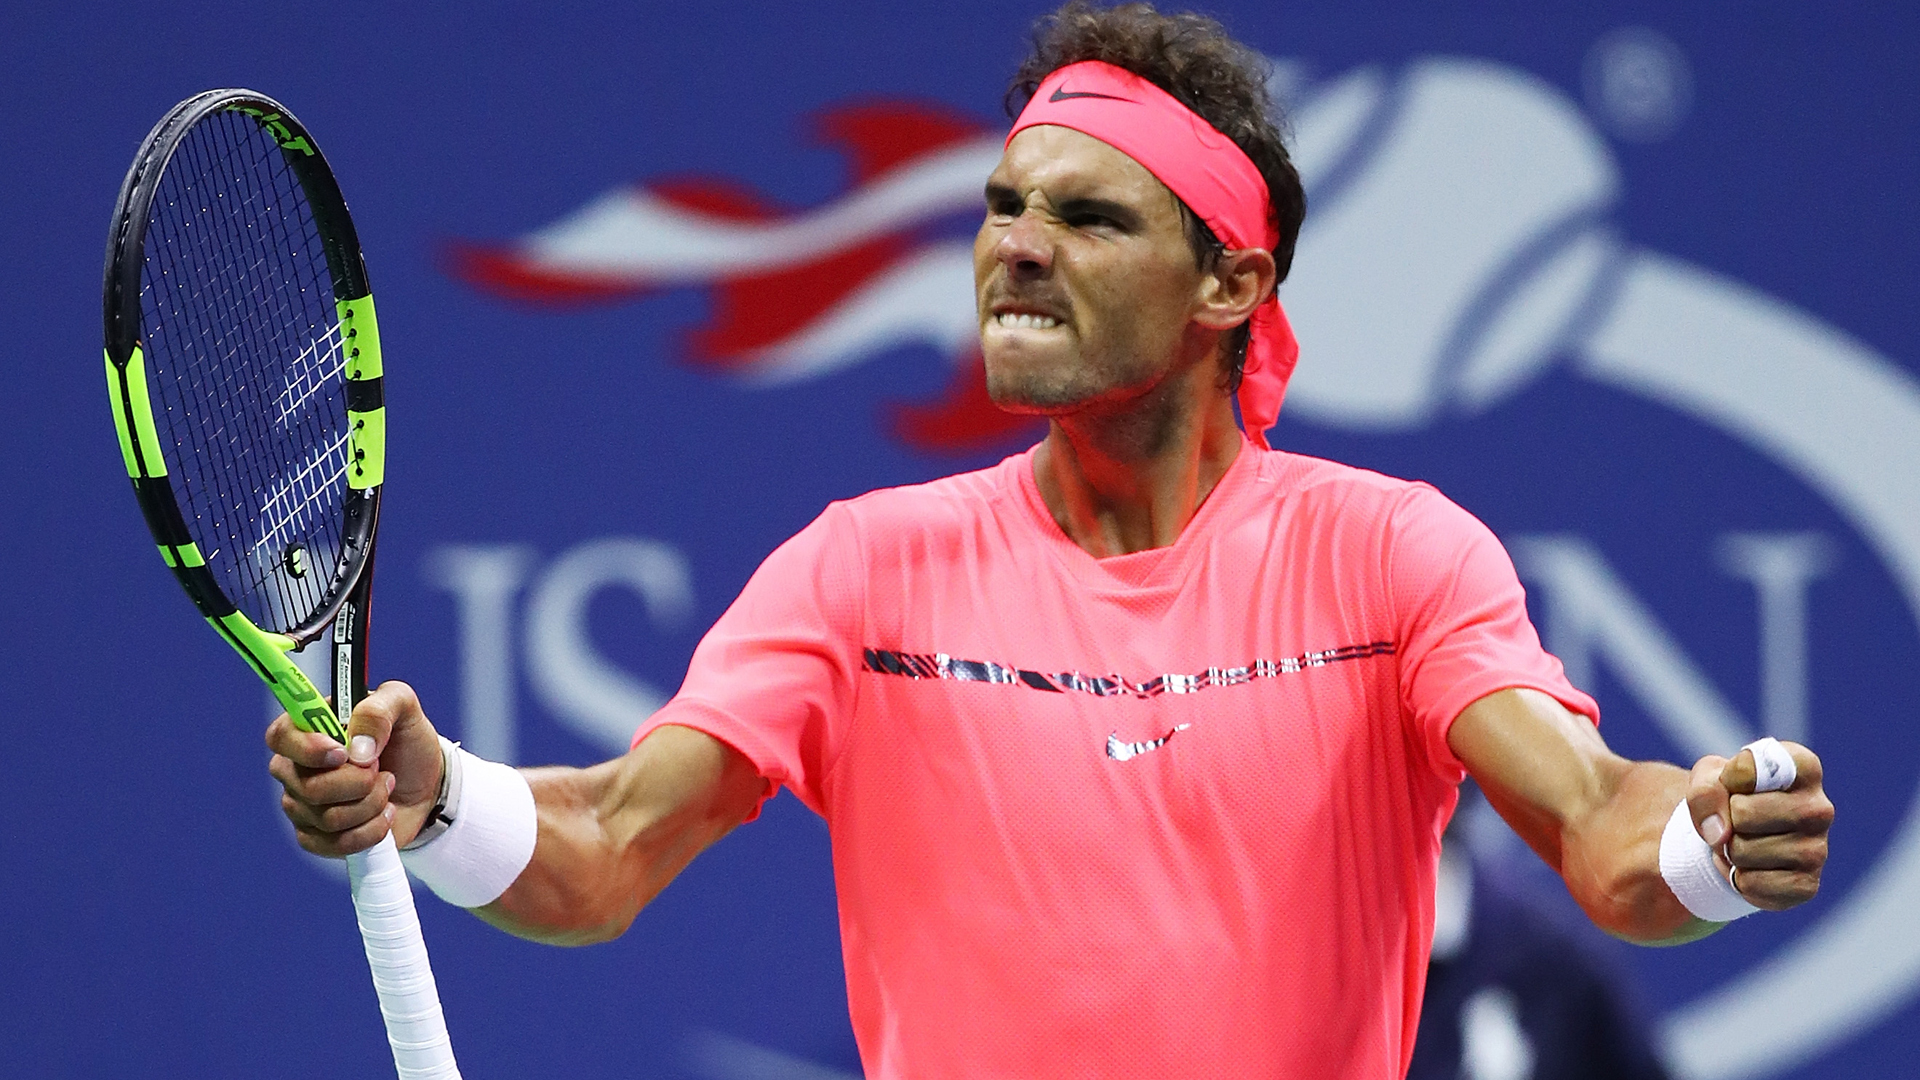 US Open: Rafael Nadal glides through, Karolina Plisovka needs just 46 minutes